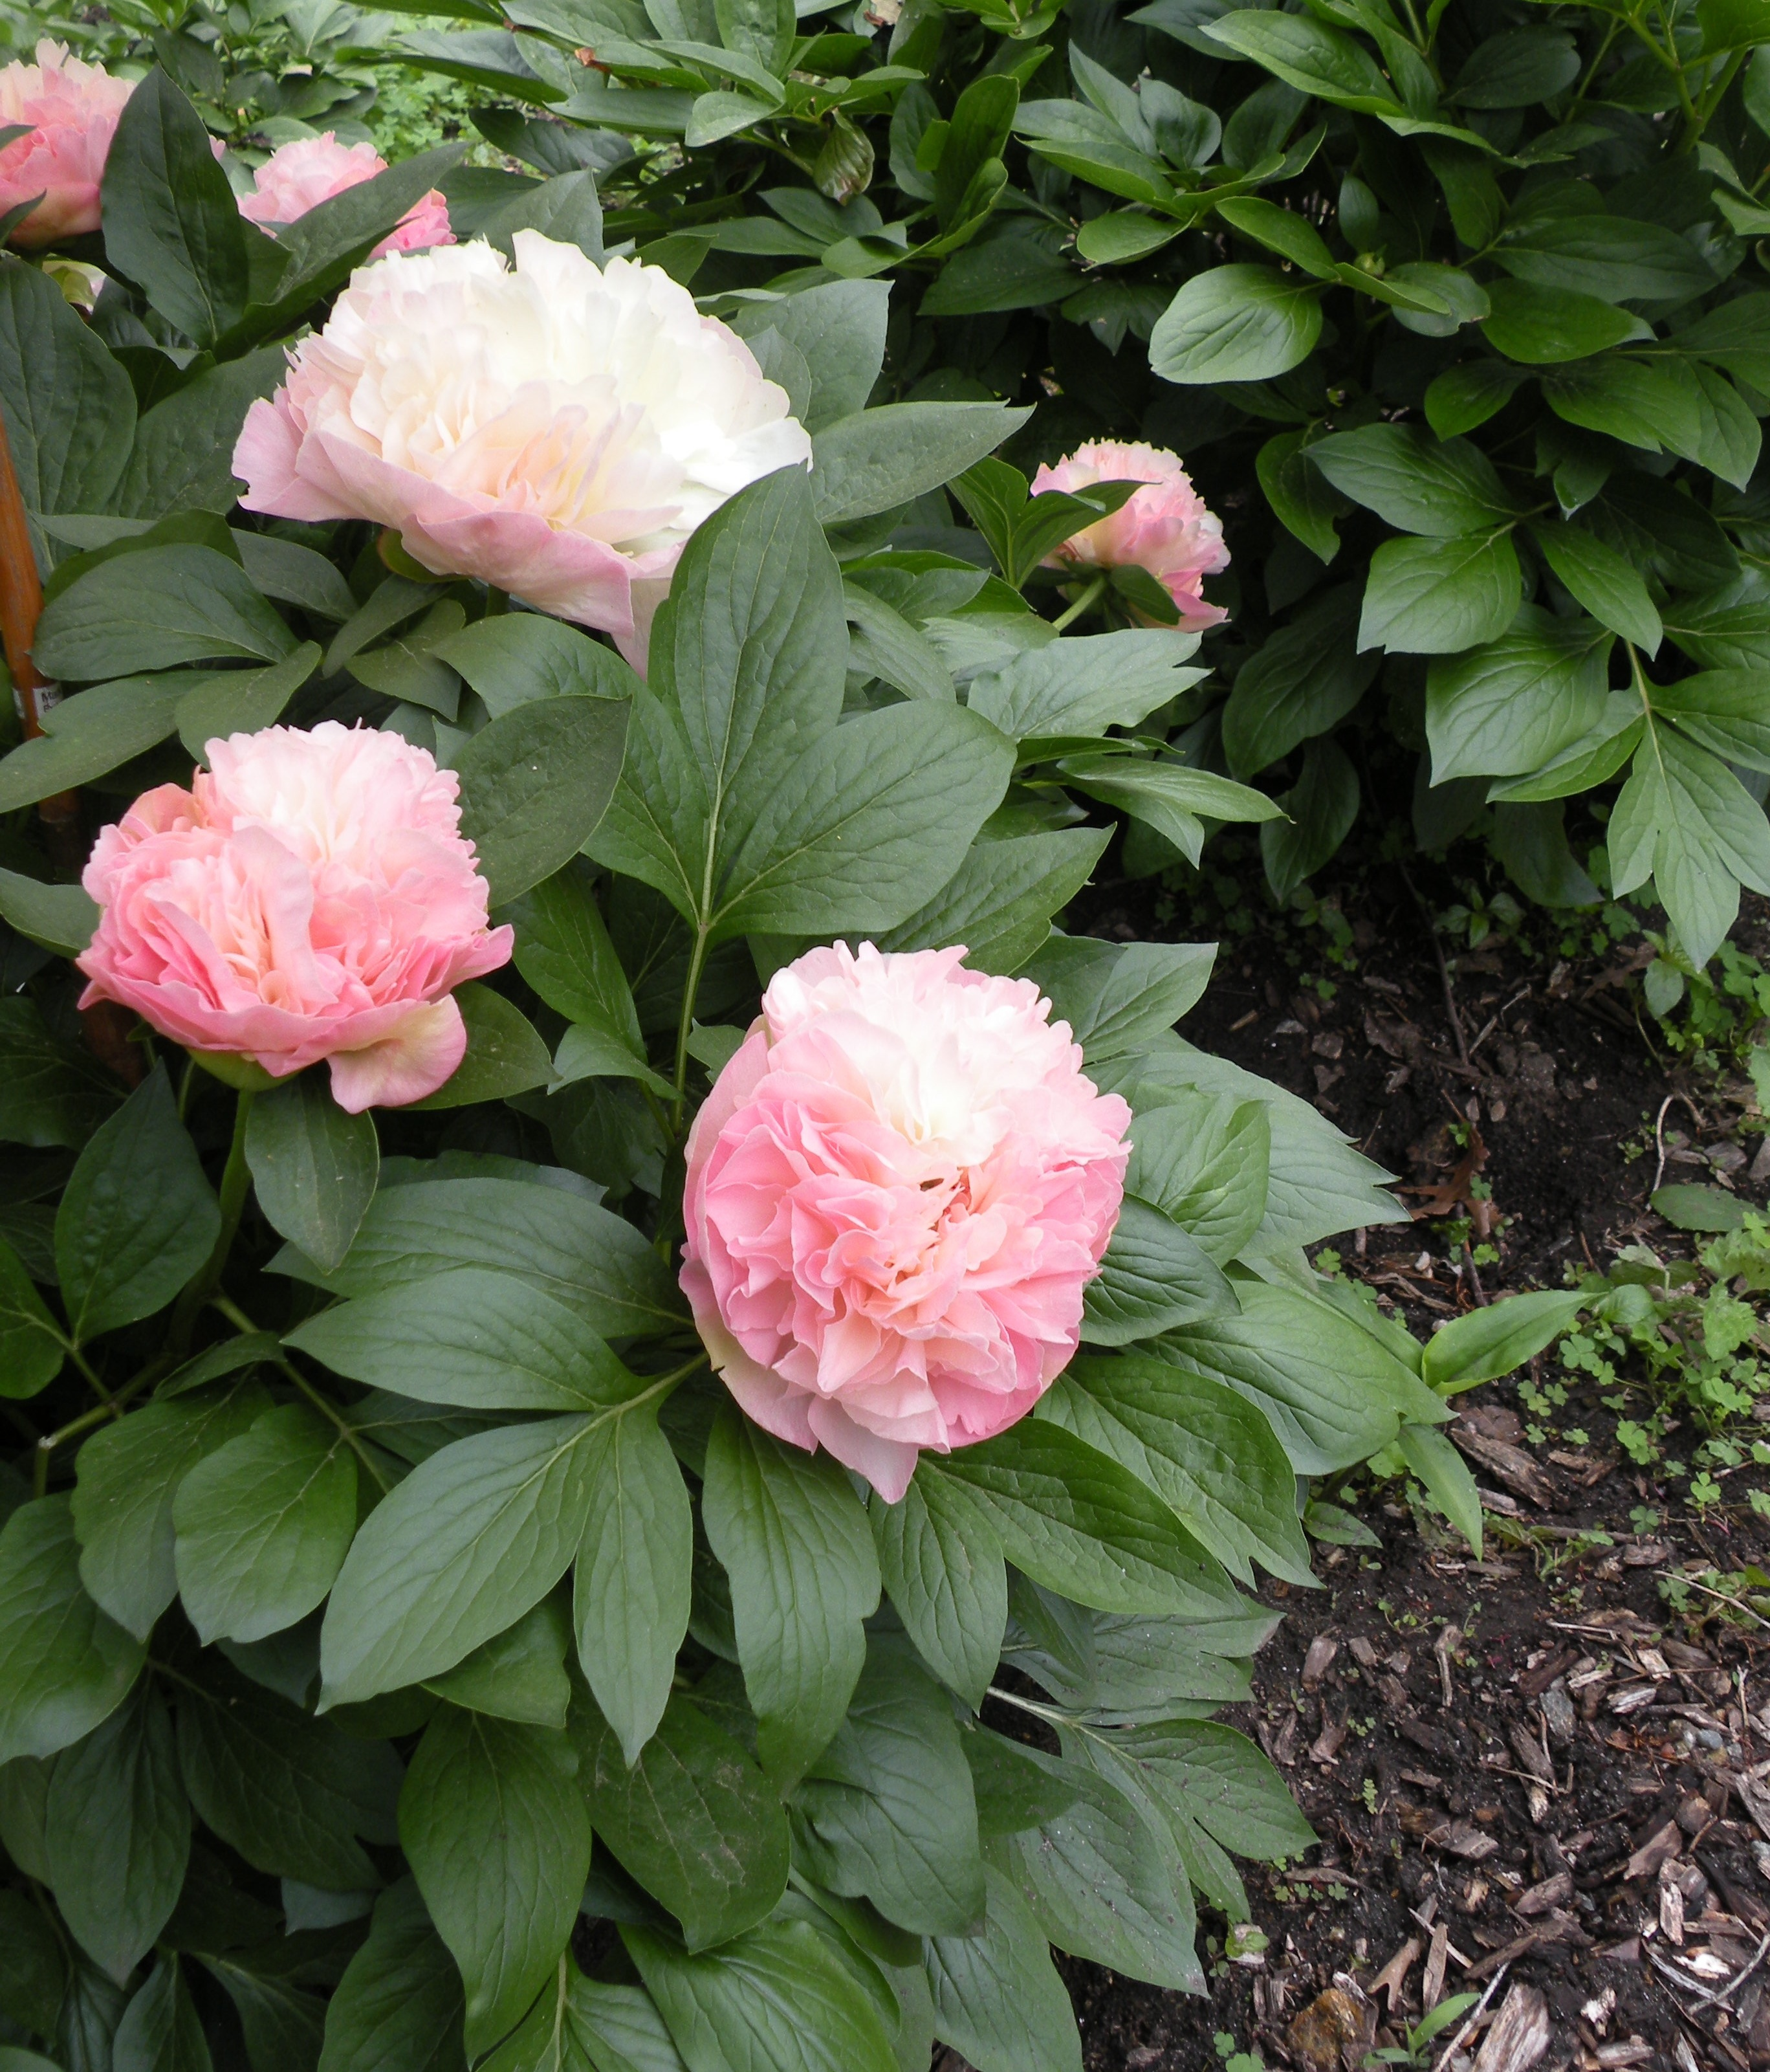 Peony growth habits a peony for every place crickethillgarden - Growing peonies in the garden ...